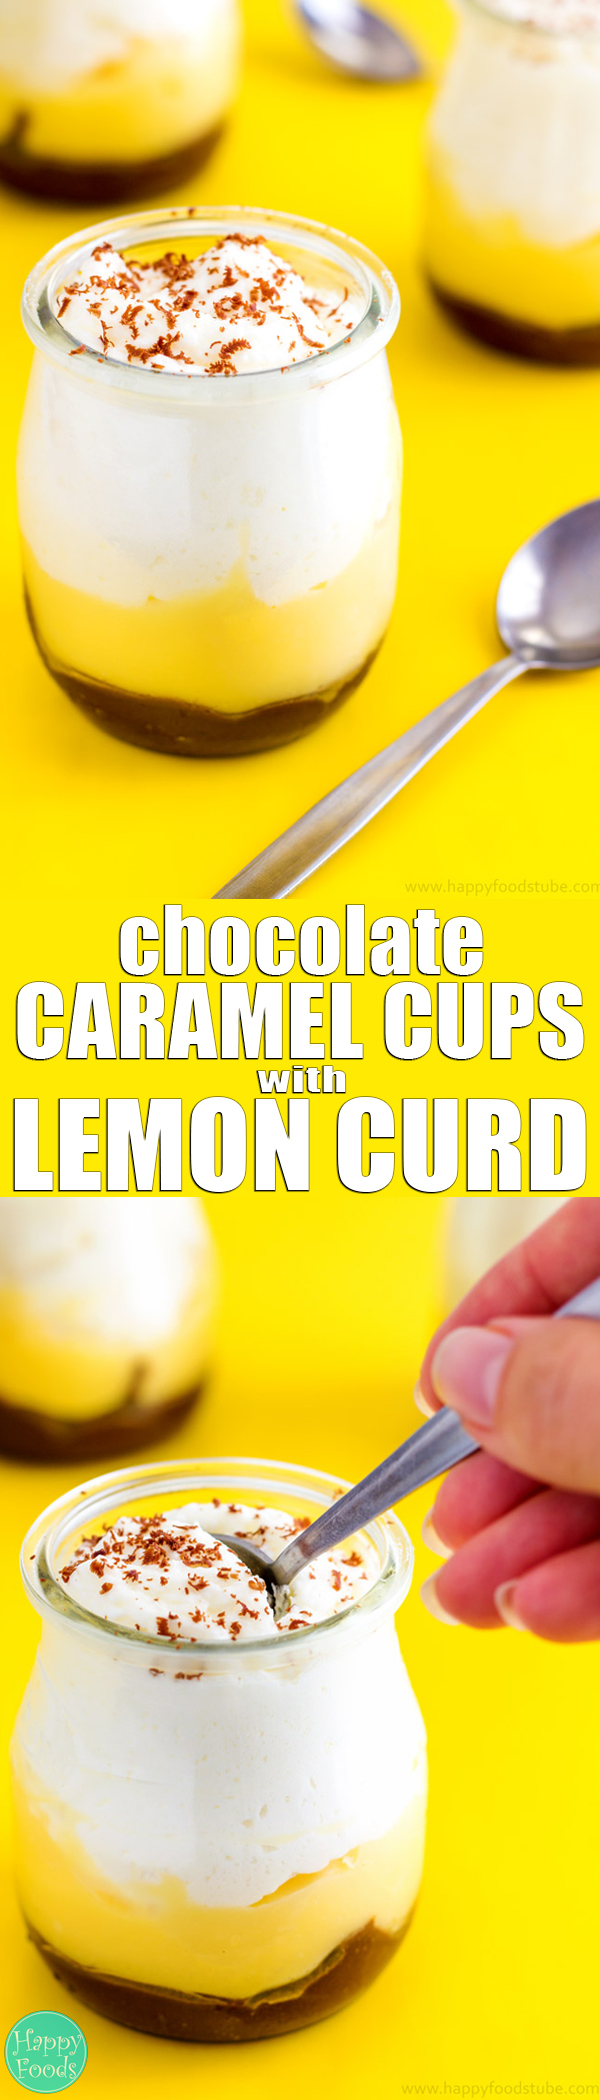 Mini Chocolate Caramel Cups with Lemon Curd - A combination of thick sweet chocolate caramel, creamy & refreshing citrusy lemon curd with soft & fluffy whipped cream is a dream come true dessert! Dessert cups recipe. Party dessert | happyfoodstube.com